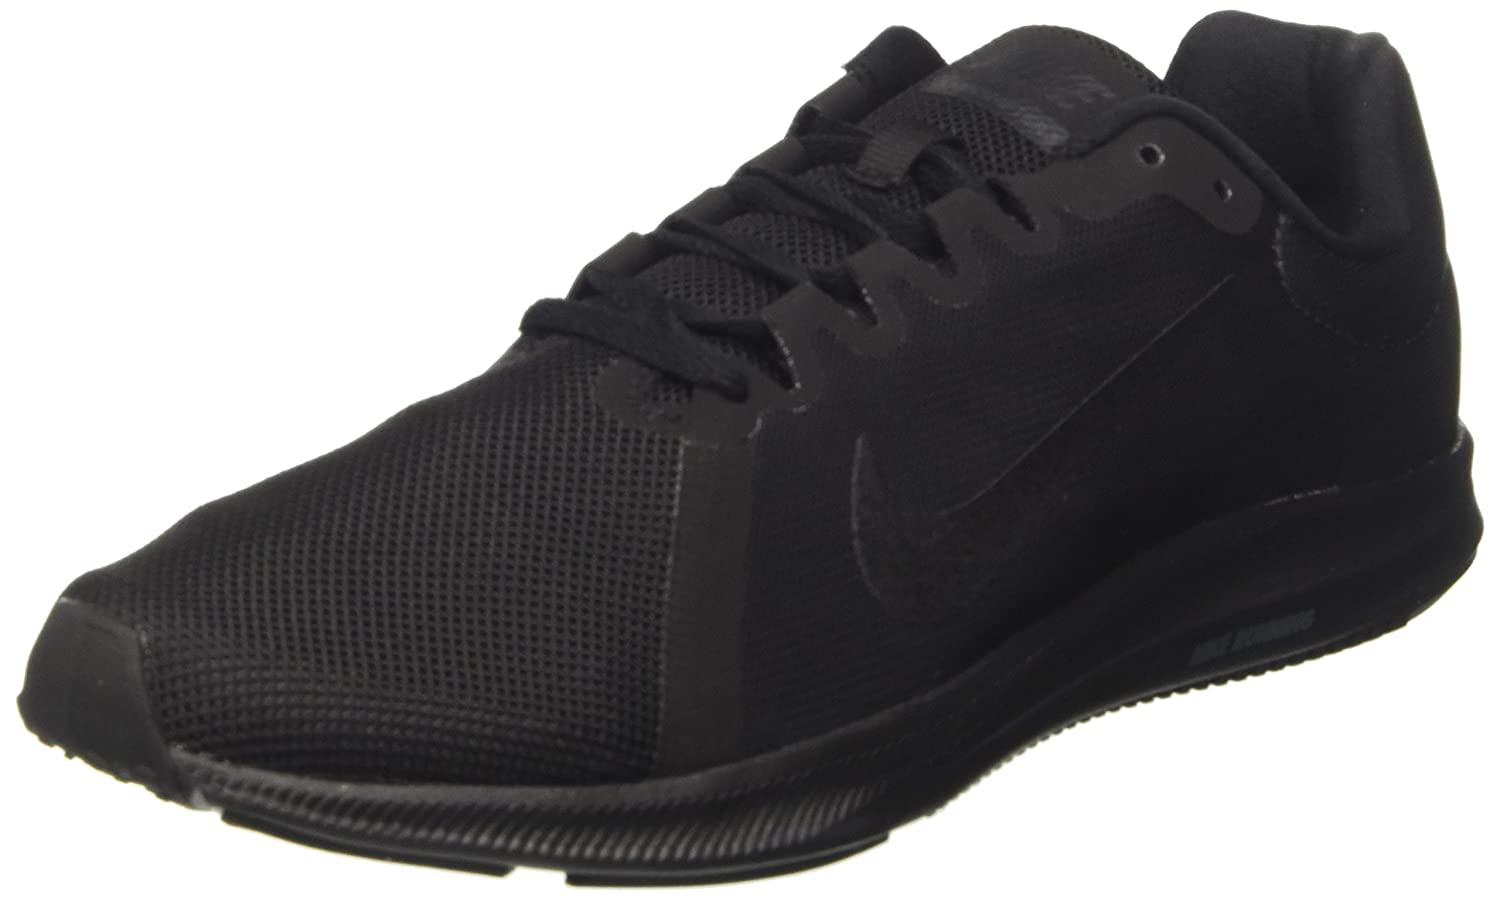 Nike Downshifter Homme 8, Chaussures de Running Homme Downshifter 46 EU|Noir (Noir/Noir 002) b61bb2